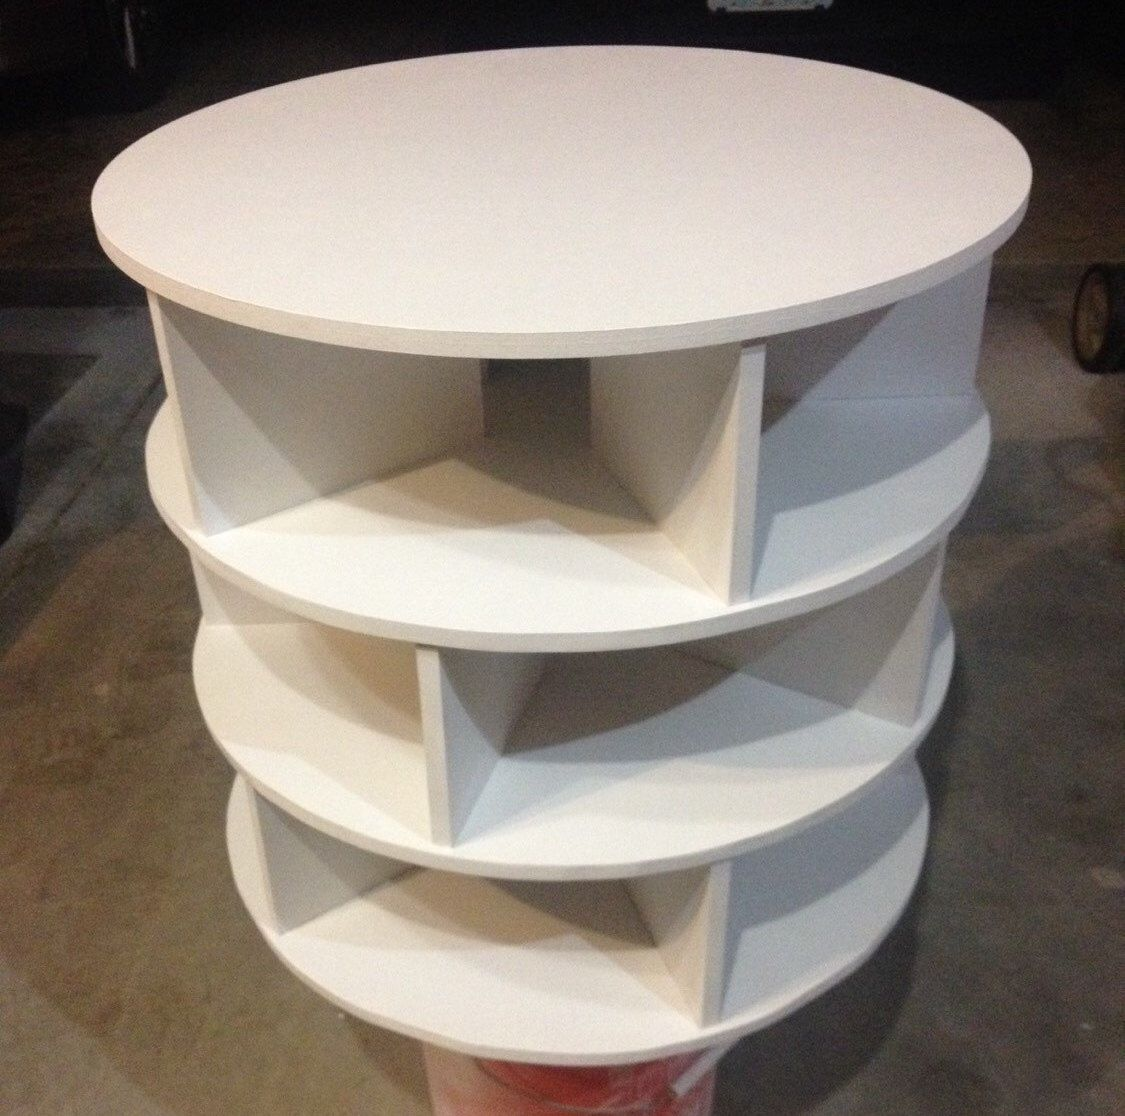 DIY Project Lazy Susan Shoe Storage Organizer 3Tier by